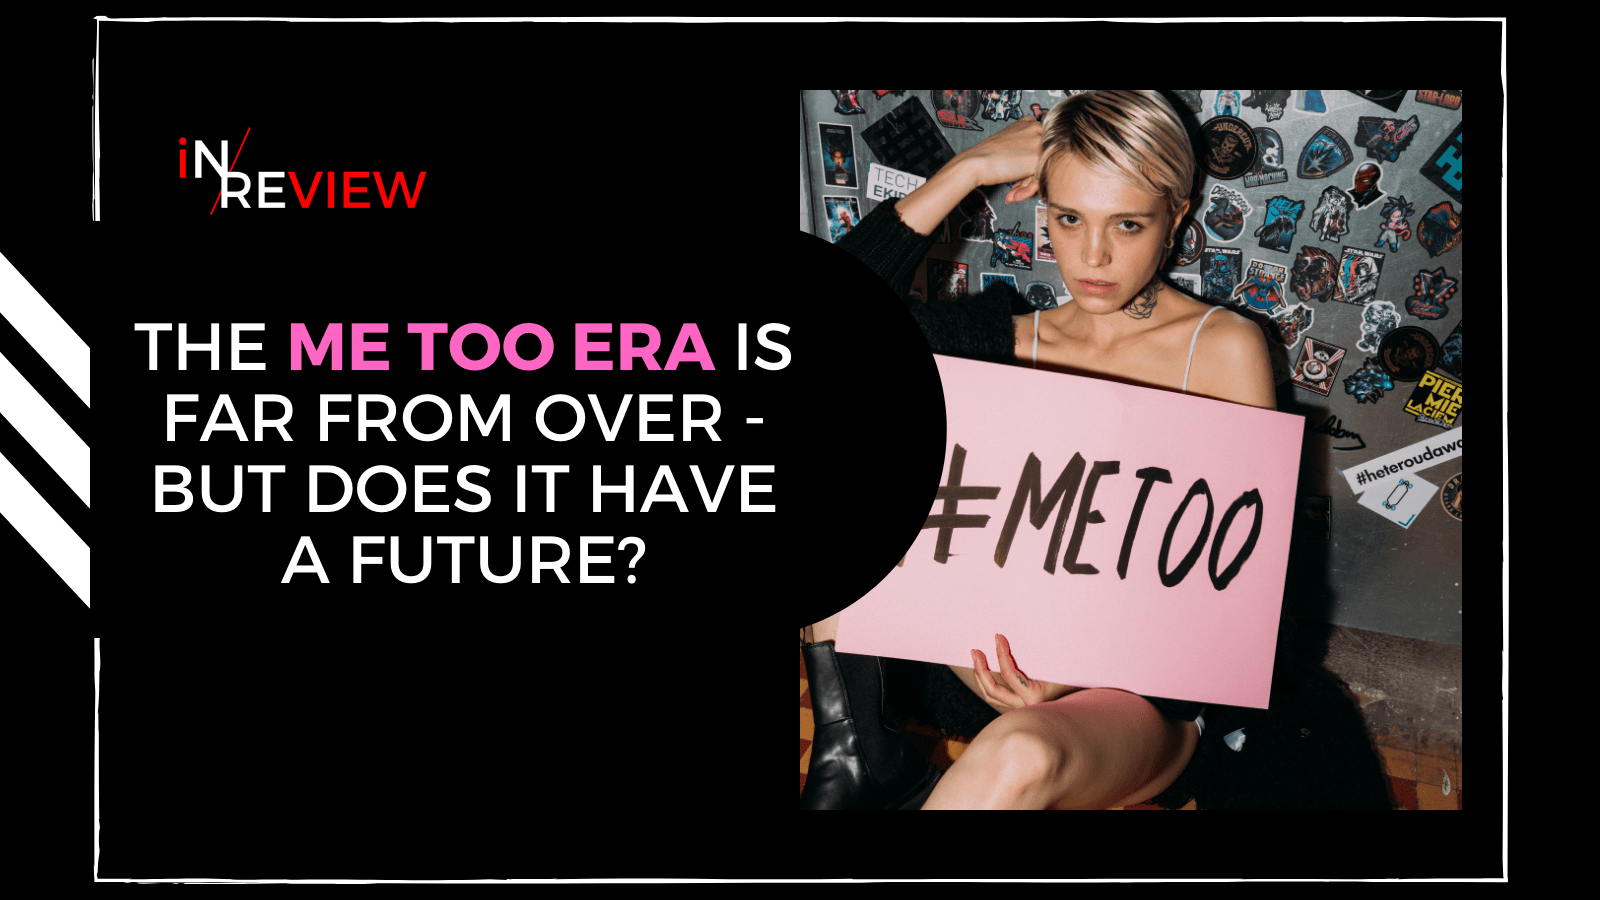 The Me Too Era Is Far From Over - But Does It Have a Future?